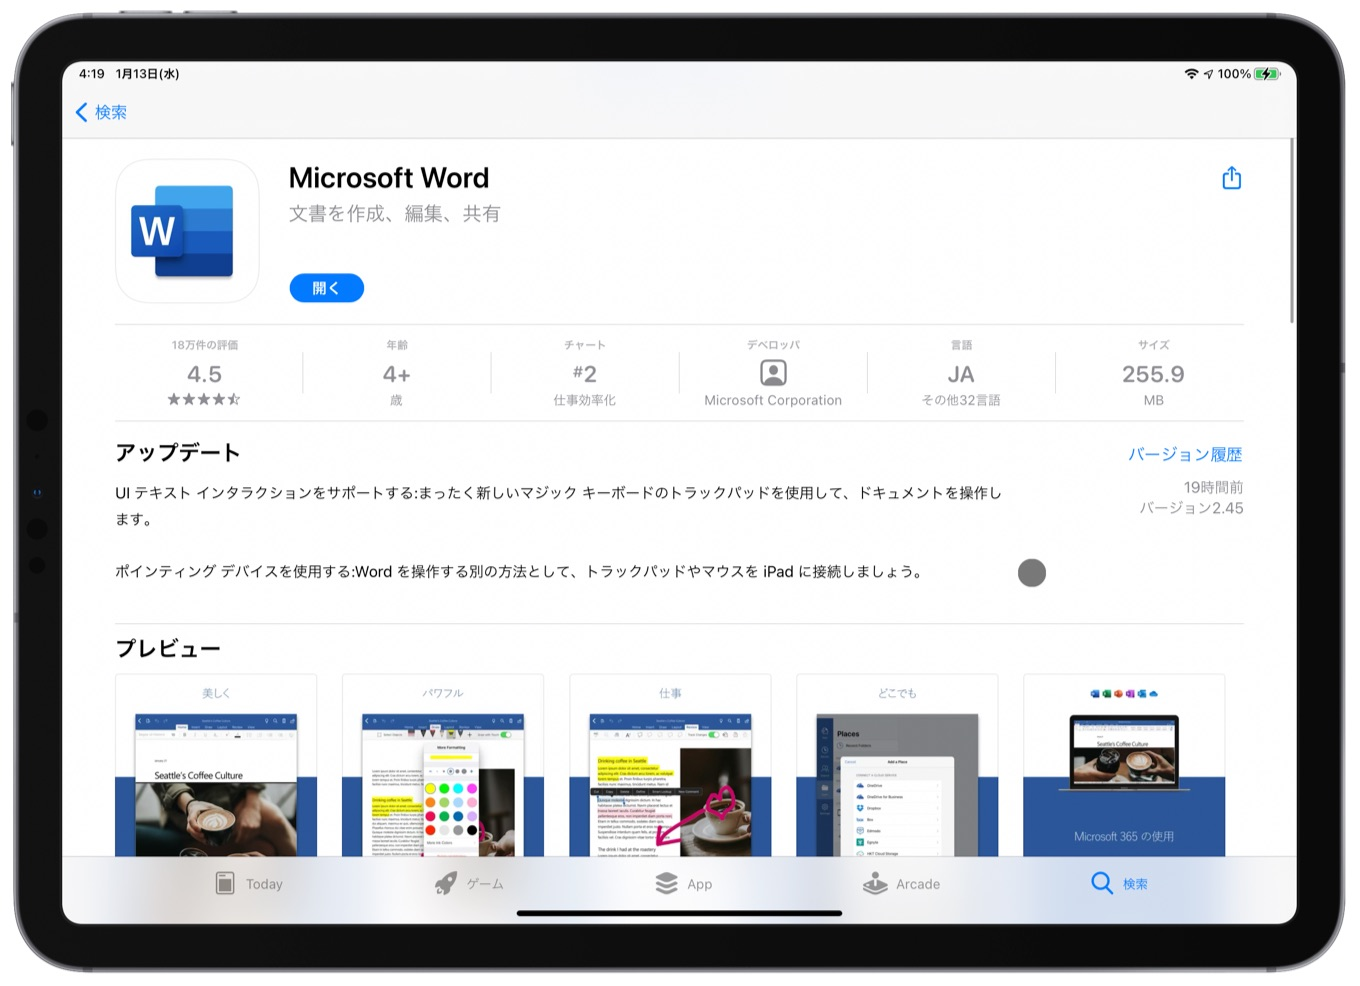 Microsoft Office for iOS v2.45